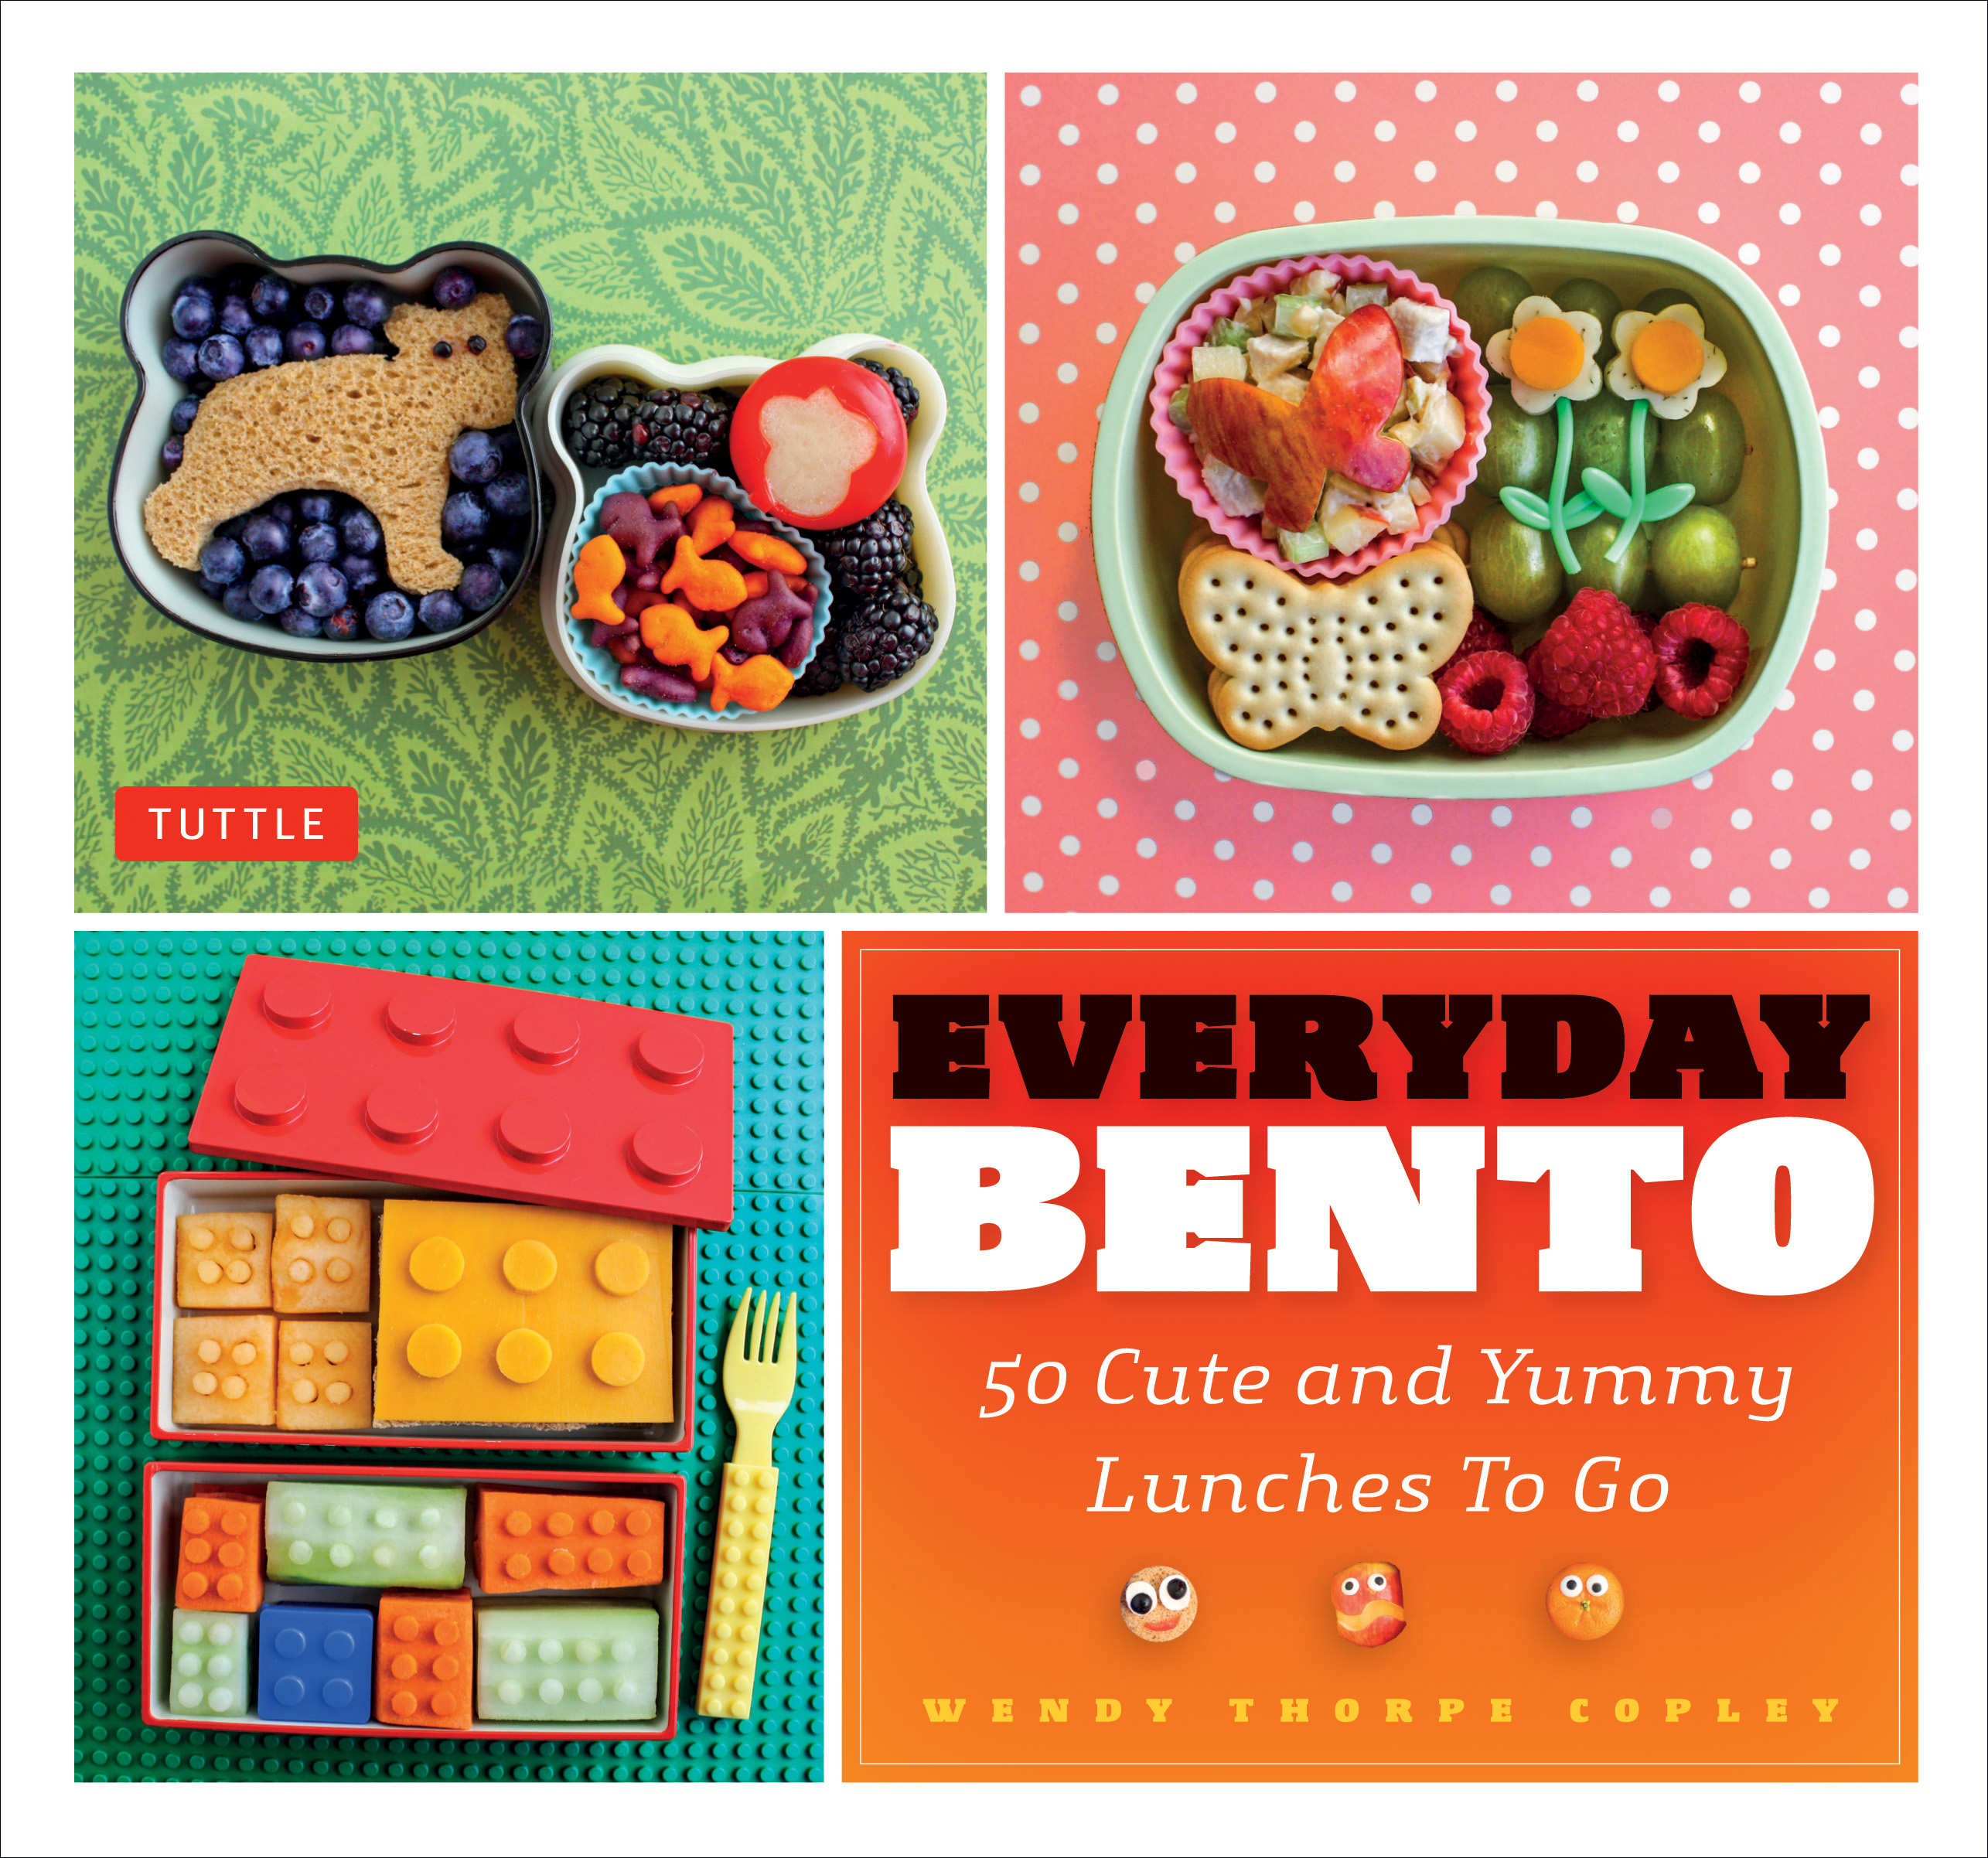 Everyday-bento-9784805312612_hr